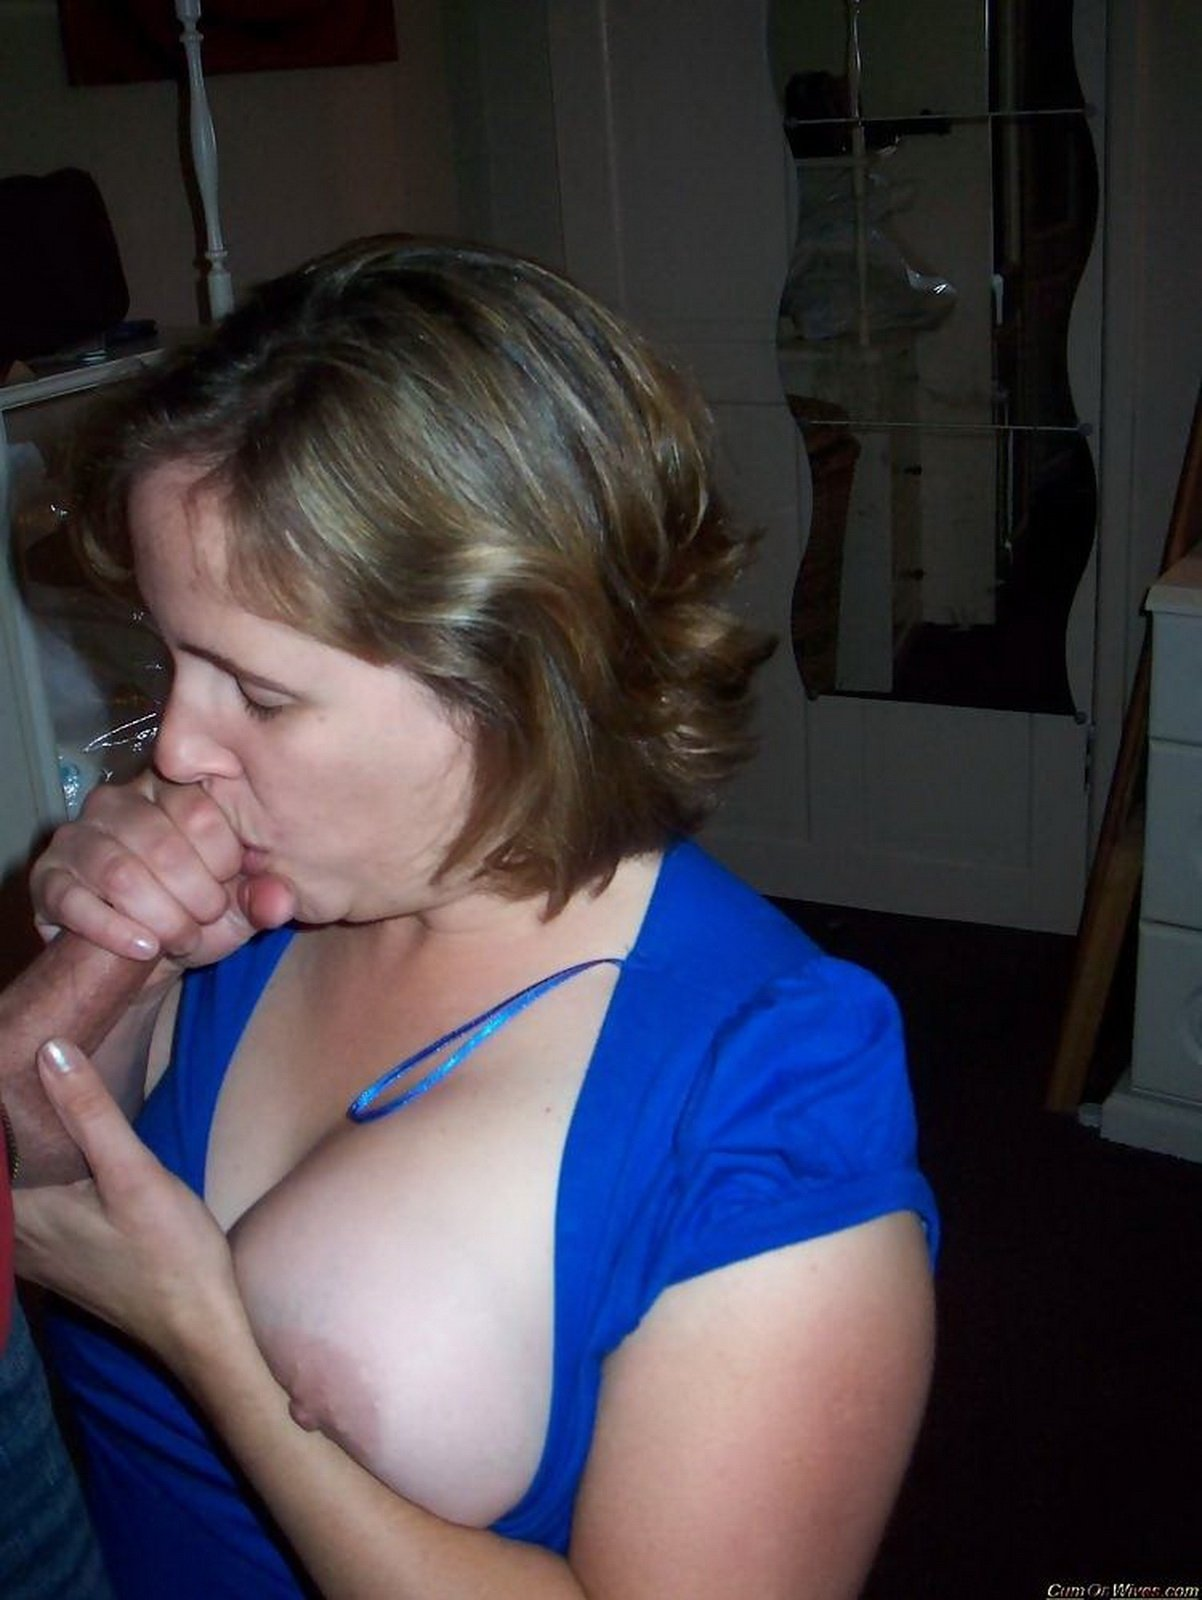 Real homemade drunk porn #1